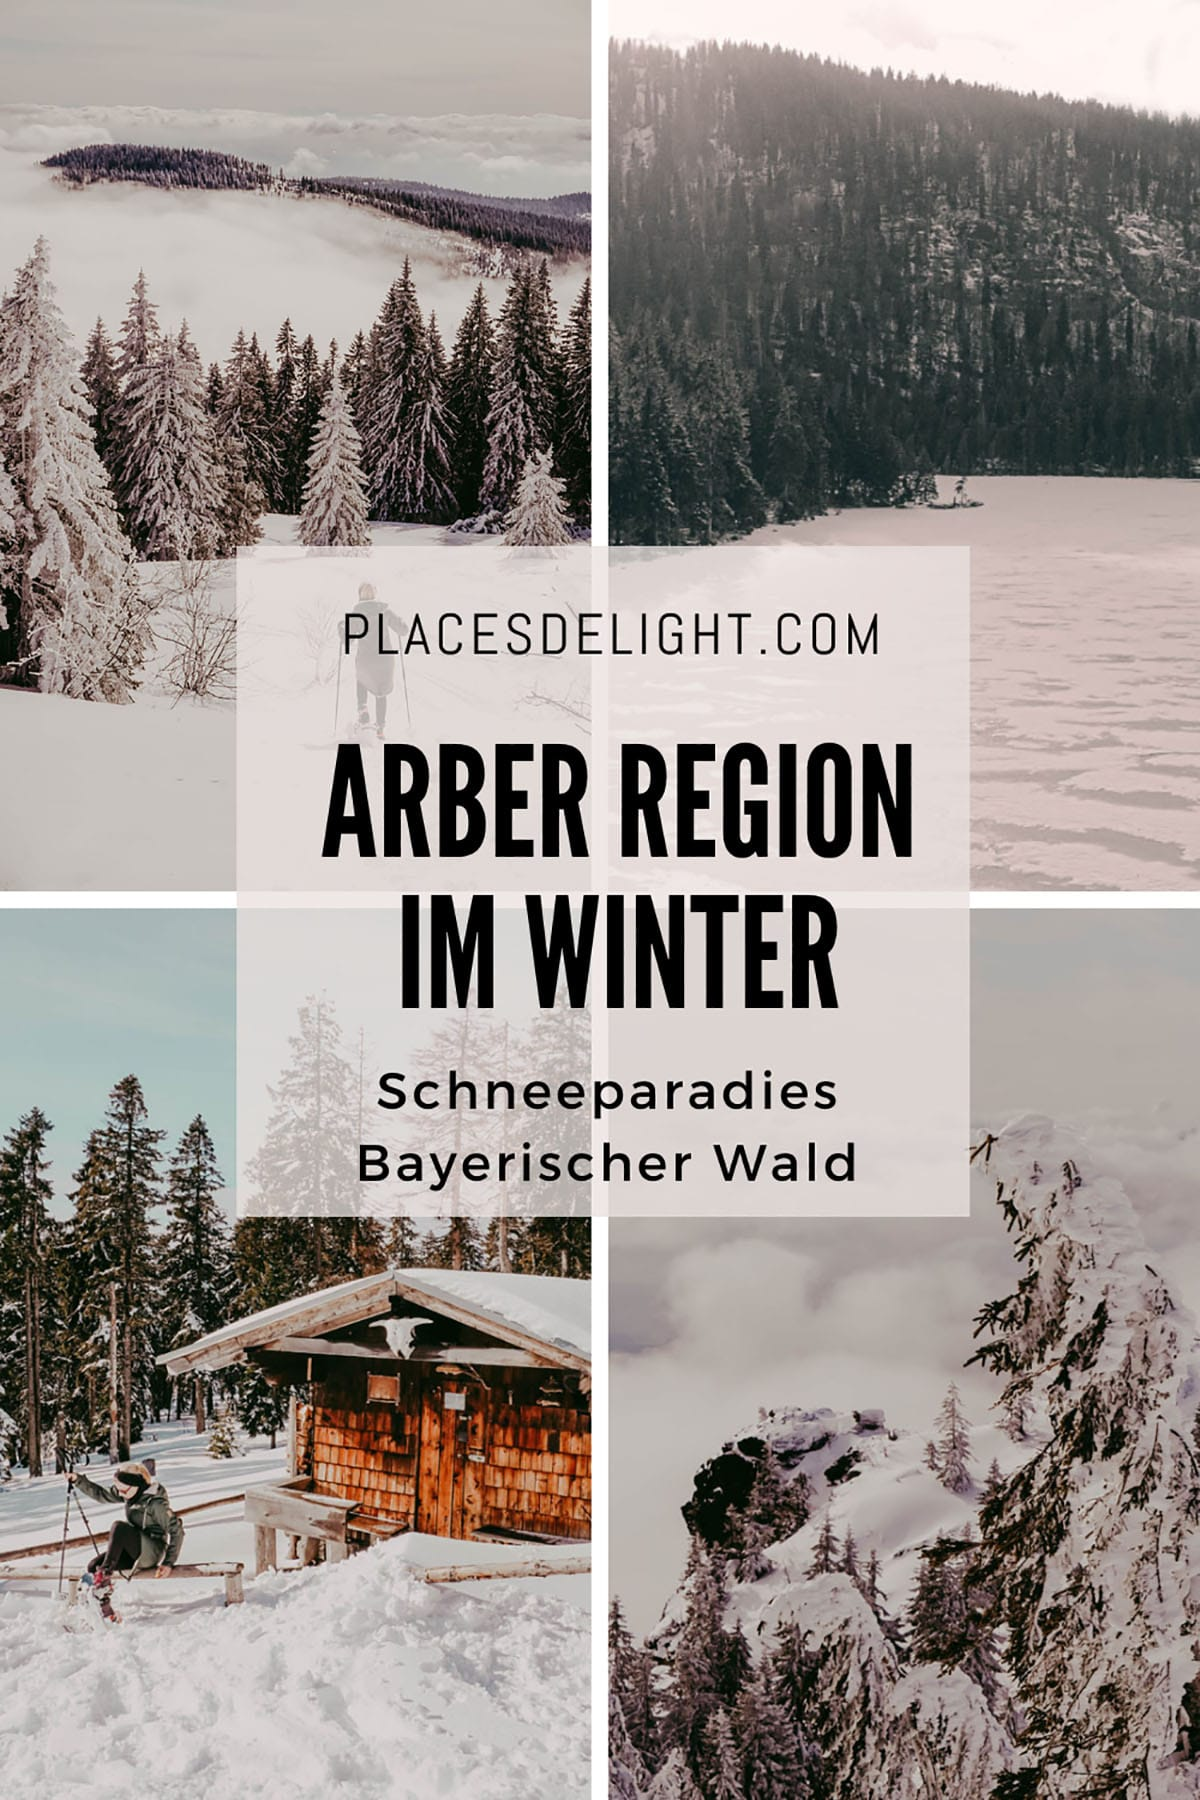 arber-region-winter-bayerischer-wald-placesdelight